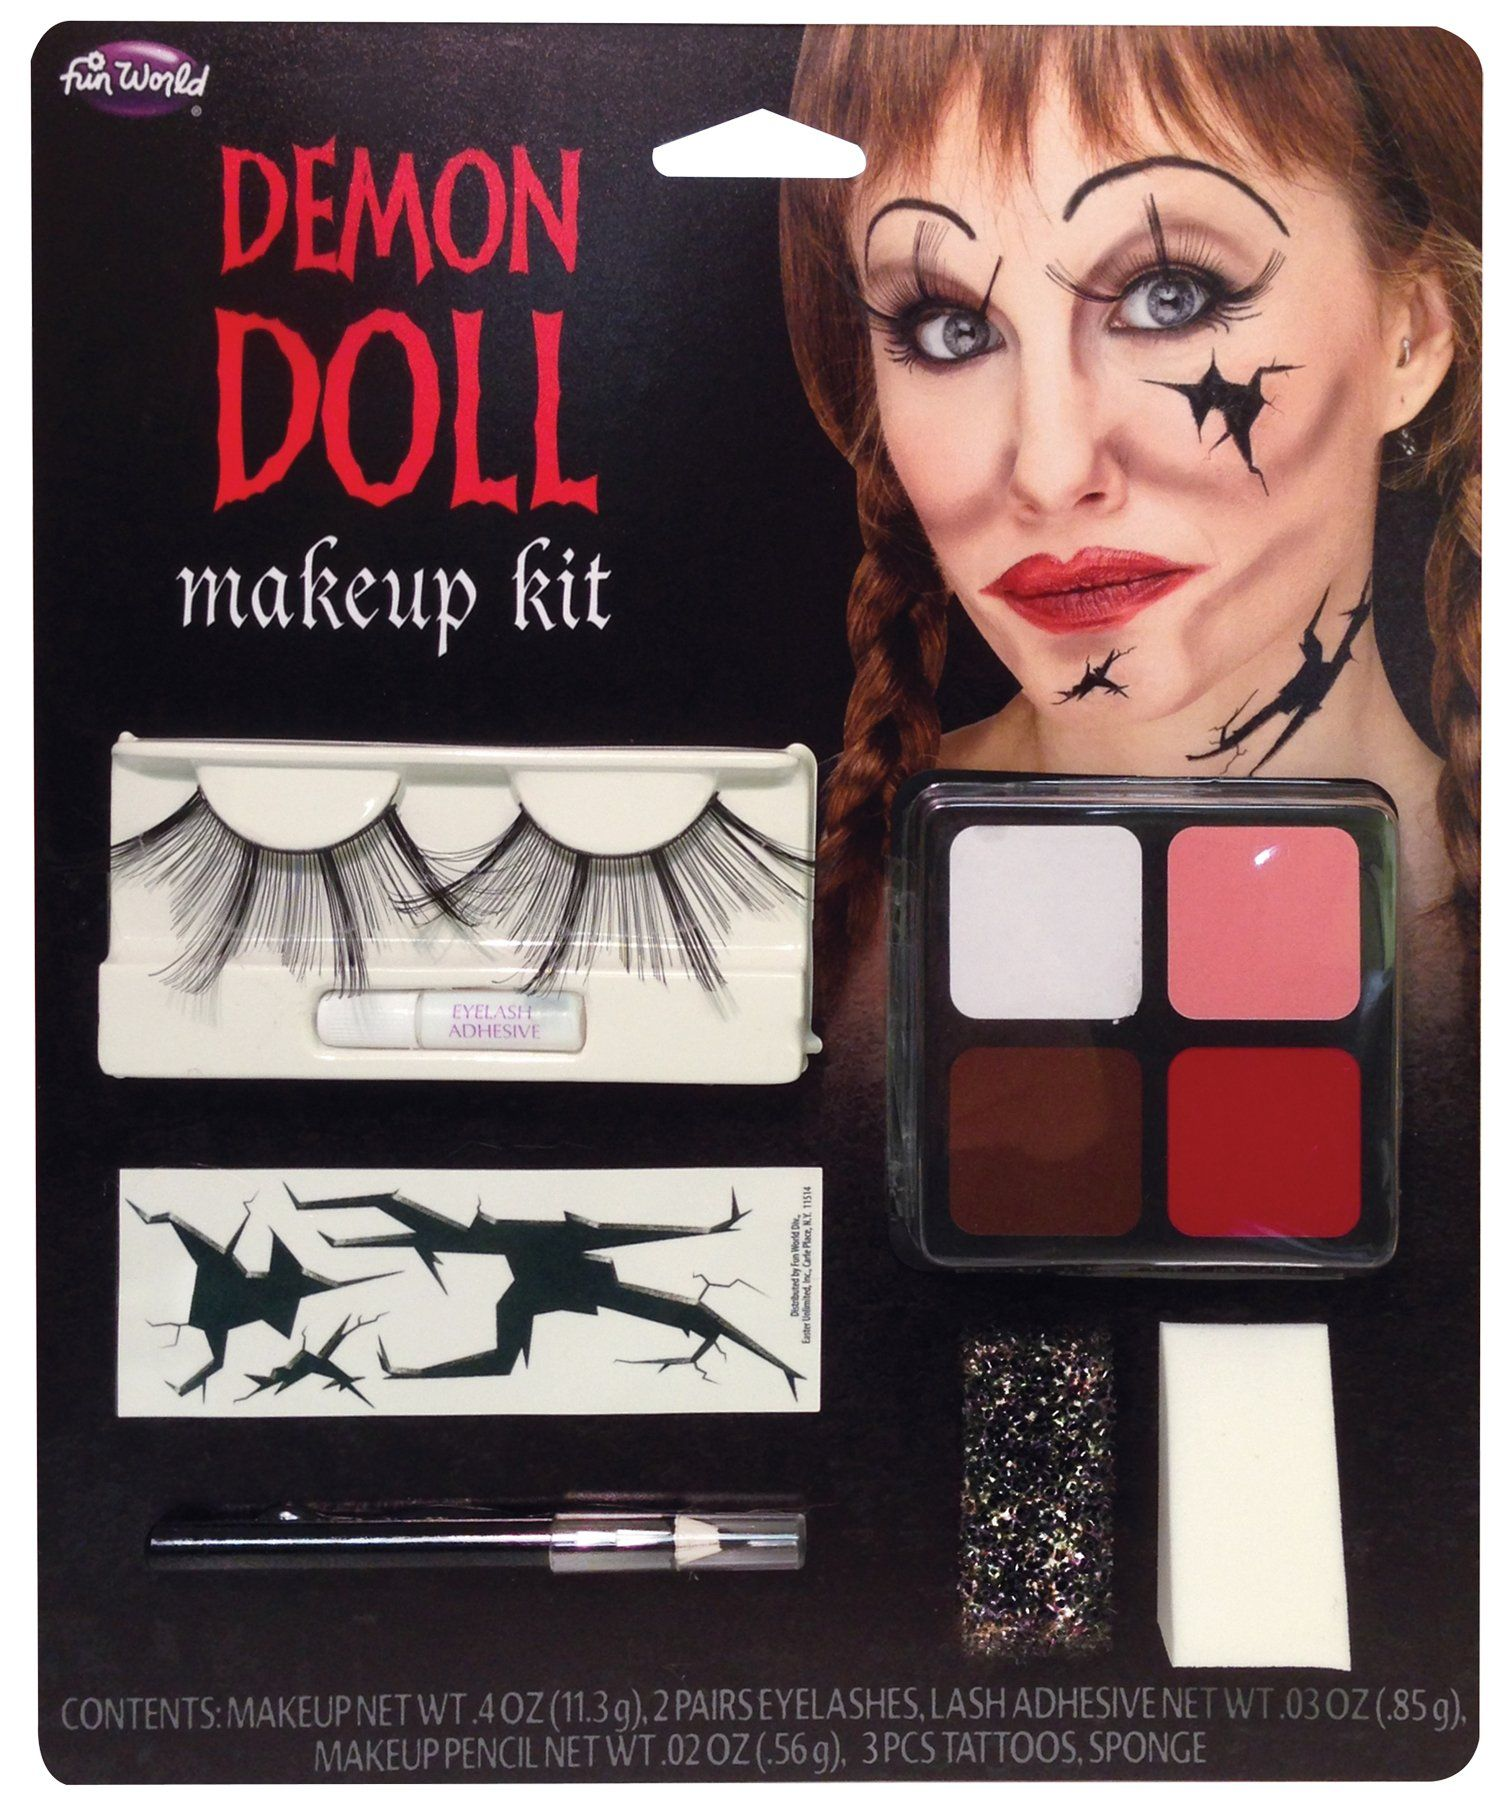 4fea43c2a14 Demon Doll Face M-U Kit | Products | Face makeup kit, Doll face ...